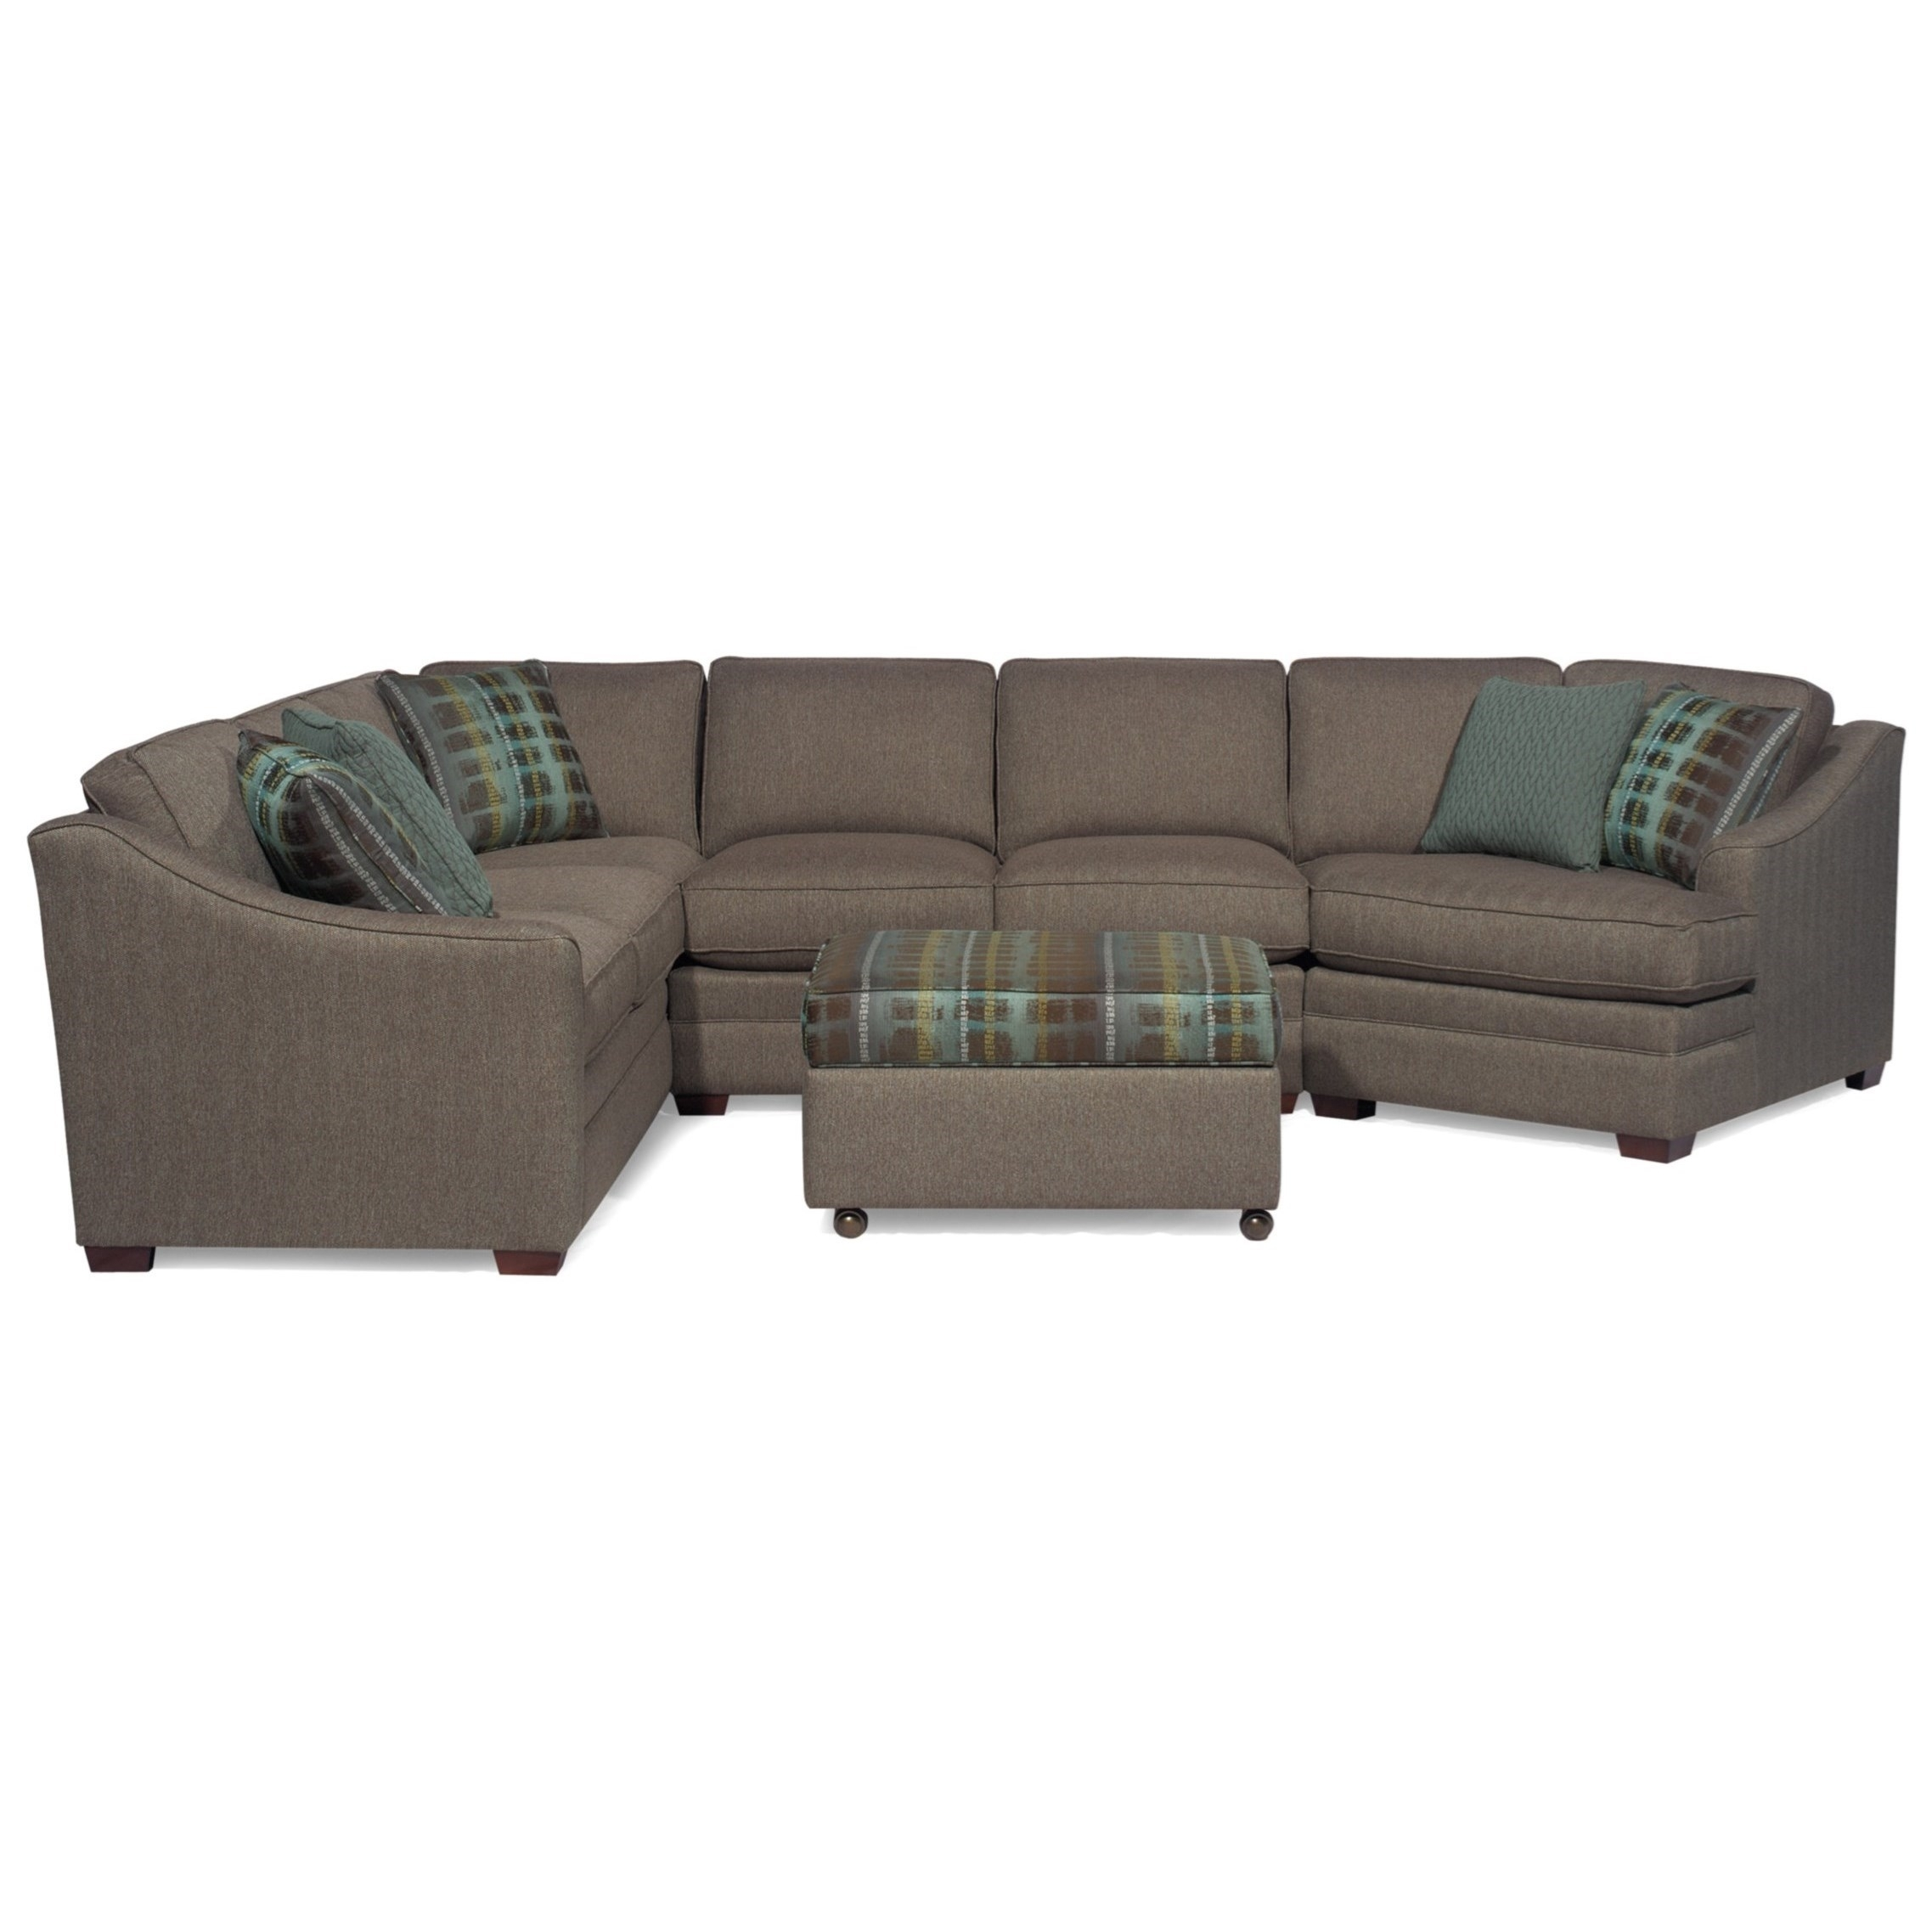 Craftmaster F9 Custom Collection <B>Customizable</b> 3-Piece within Avery 2 Piece Sectionals With Raf Armless Chaise (Image 11 of 30)